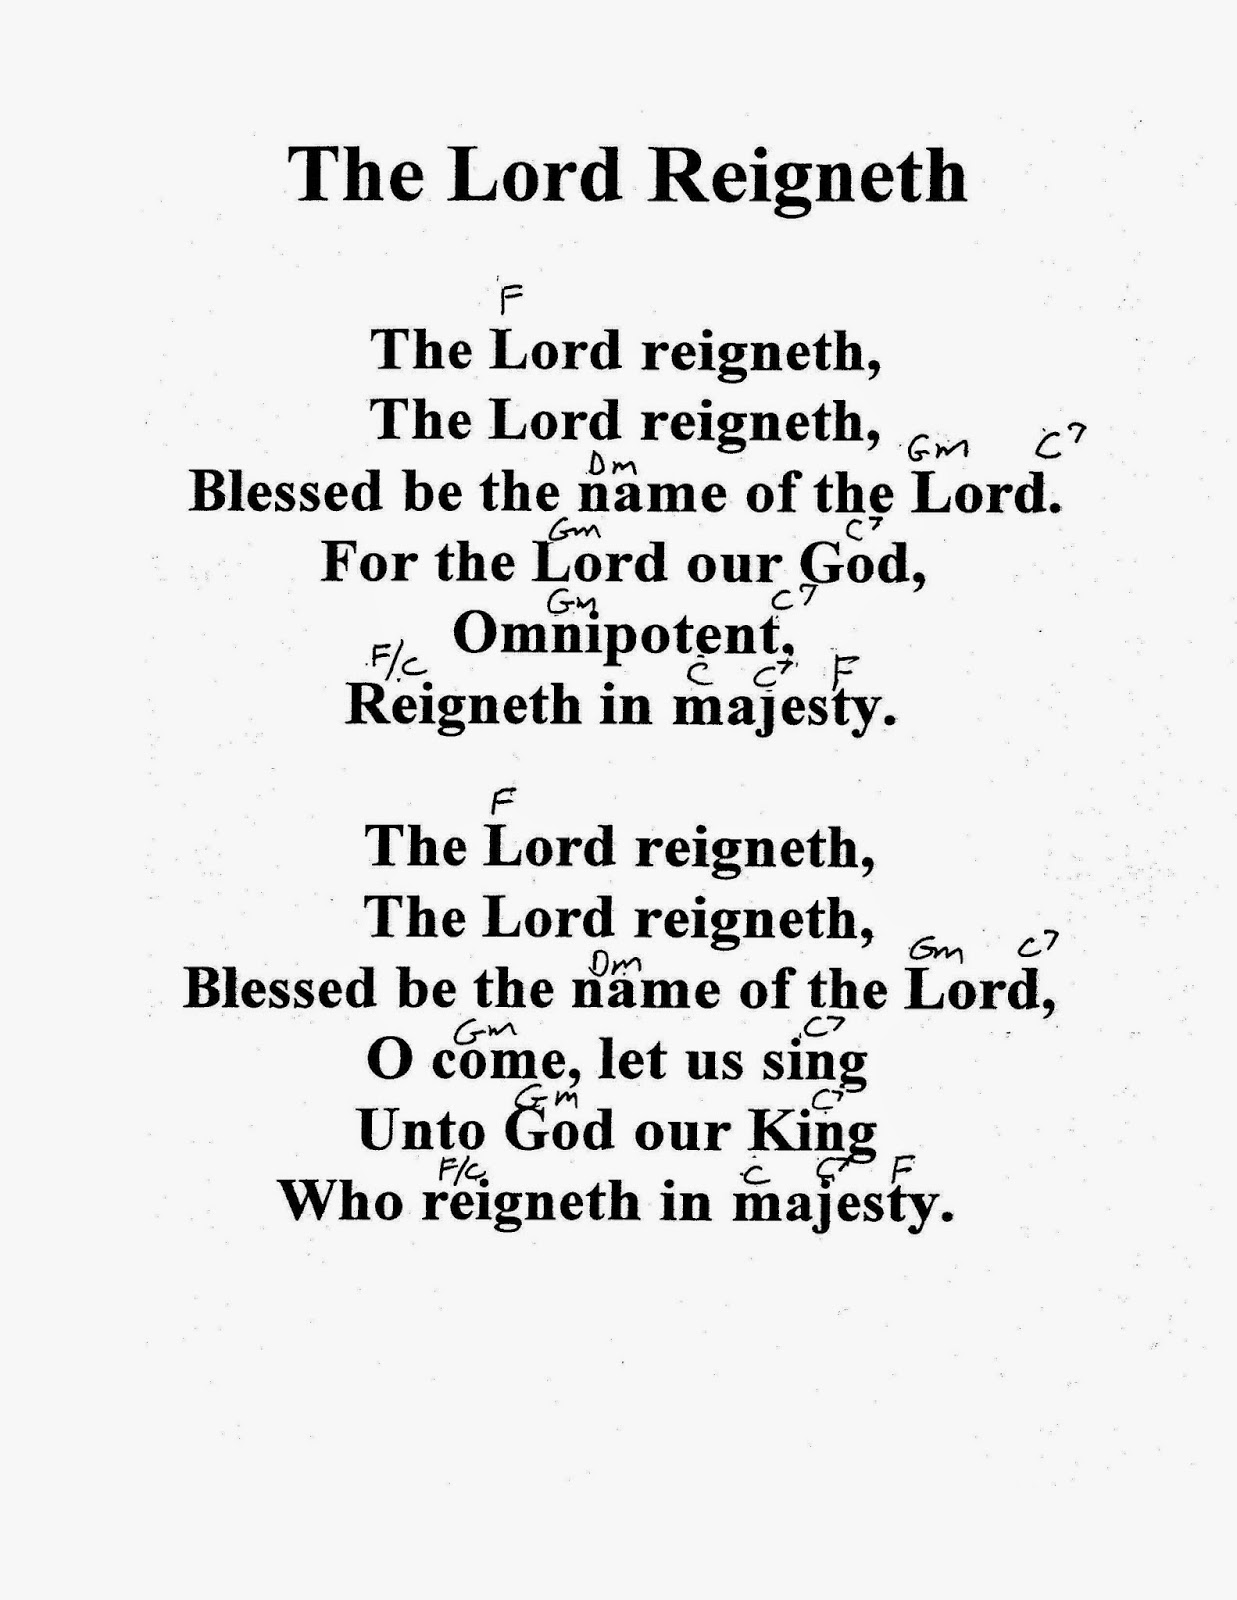 Worship Lead Sheets: The Lord Reigneth